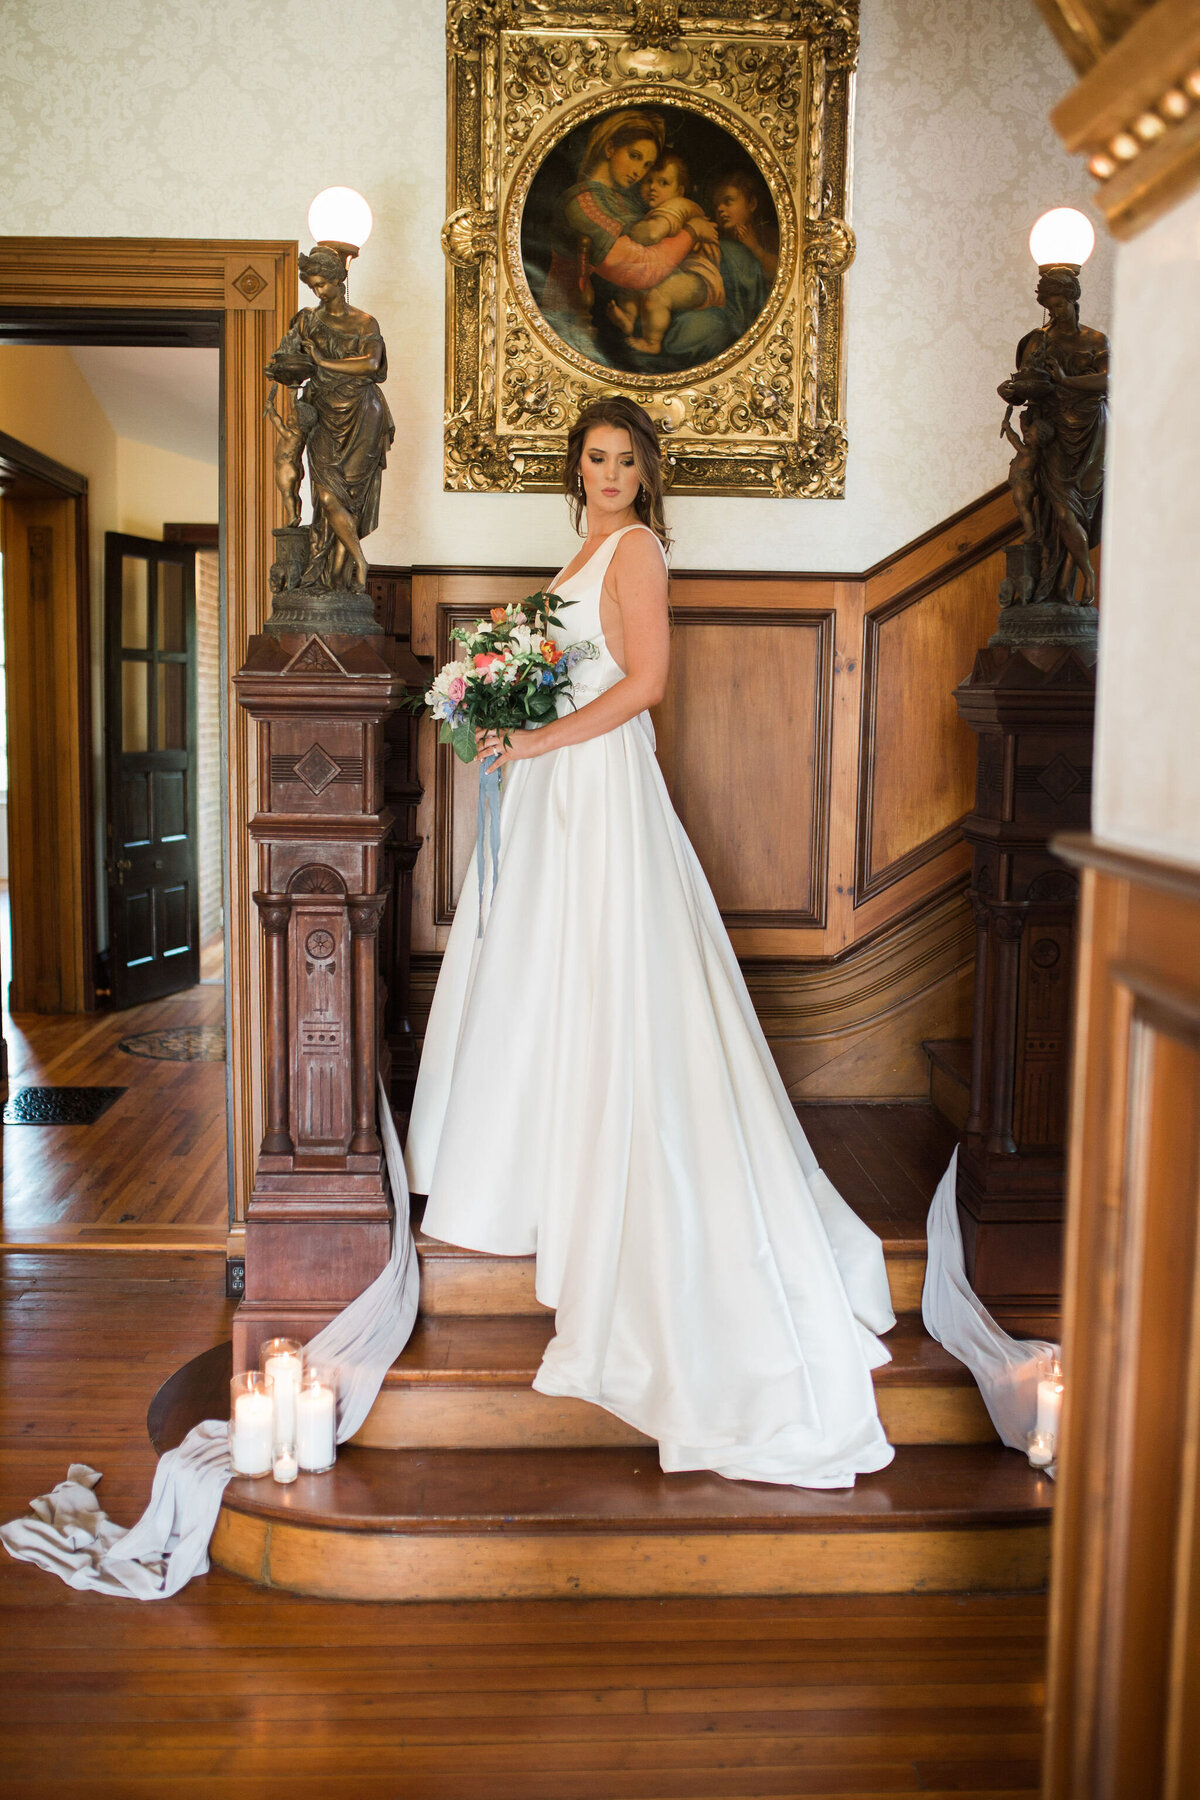 Lynwood Estate - Luxury Kentucky Wedding Venue - Styled Shoot 00001